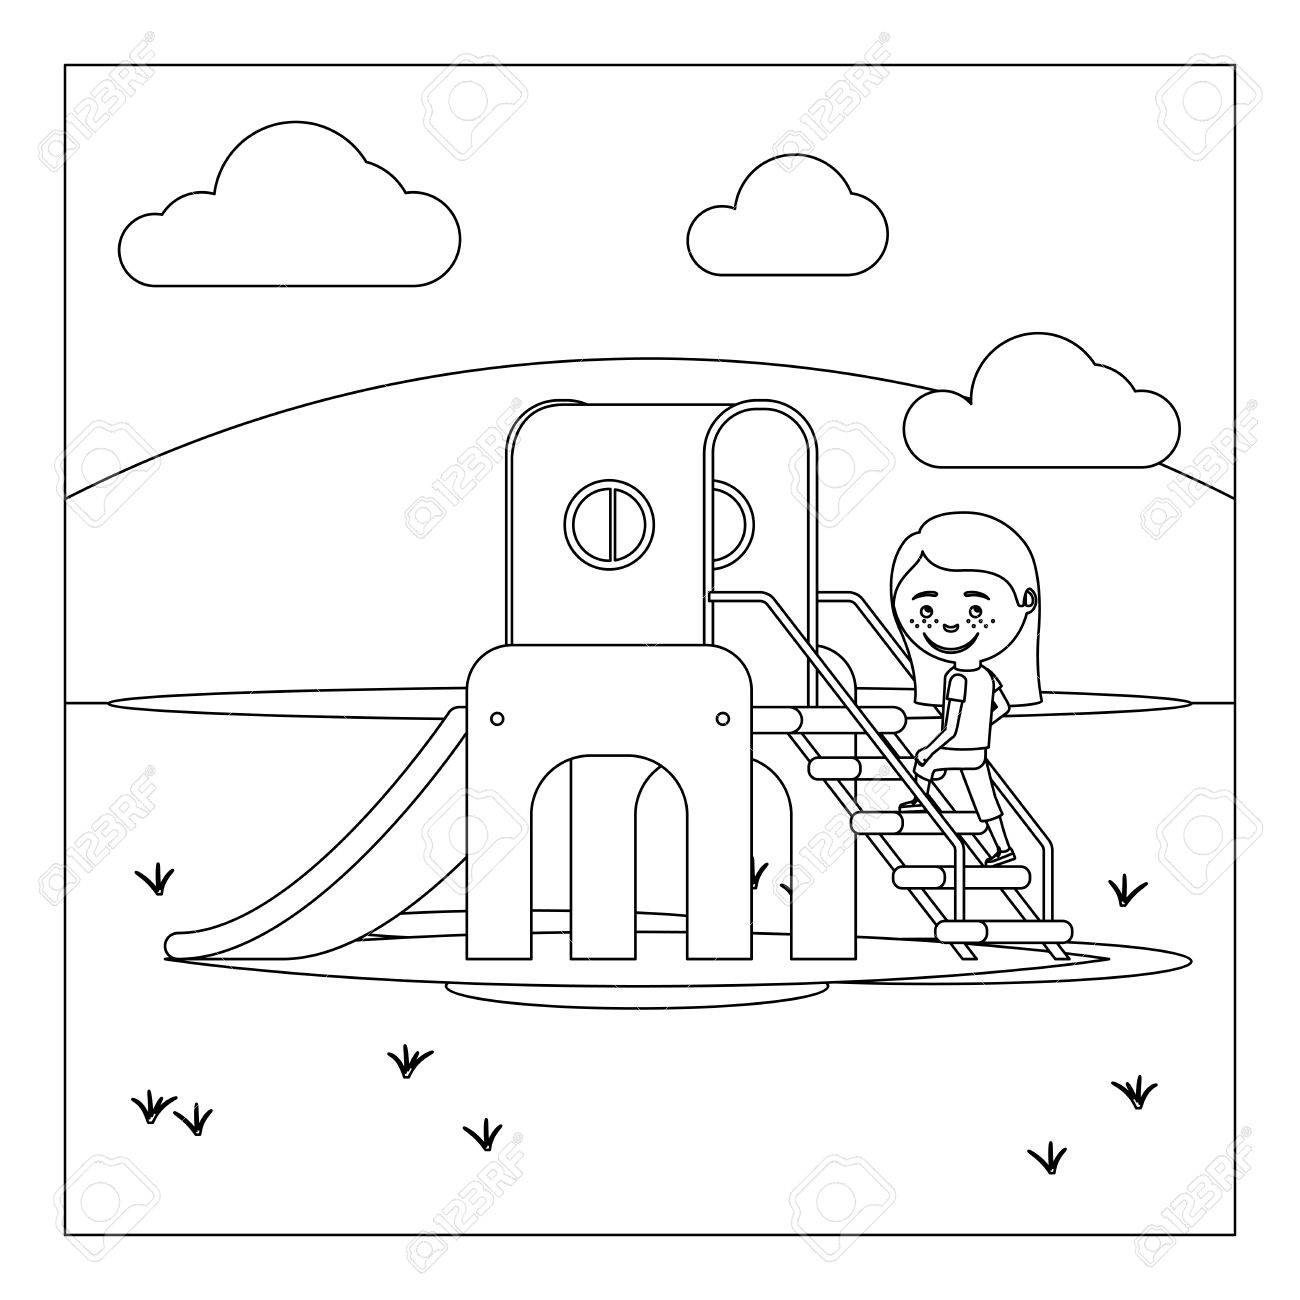 Coloring book page of a playground - Coloring Book Page Design With Kid On Playground Stock Vector 63929466